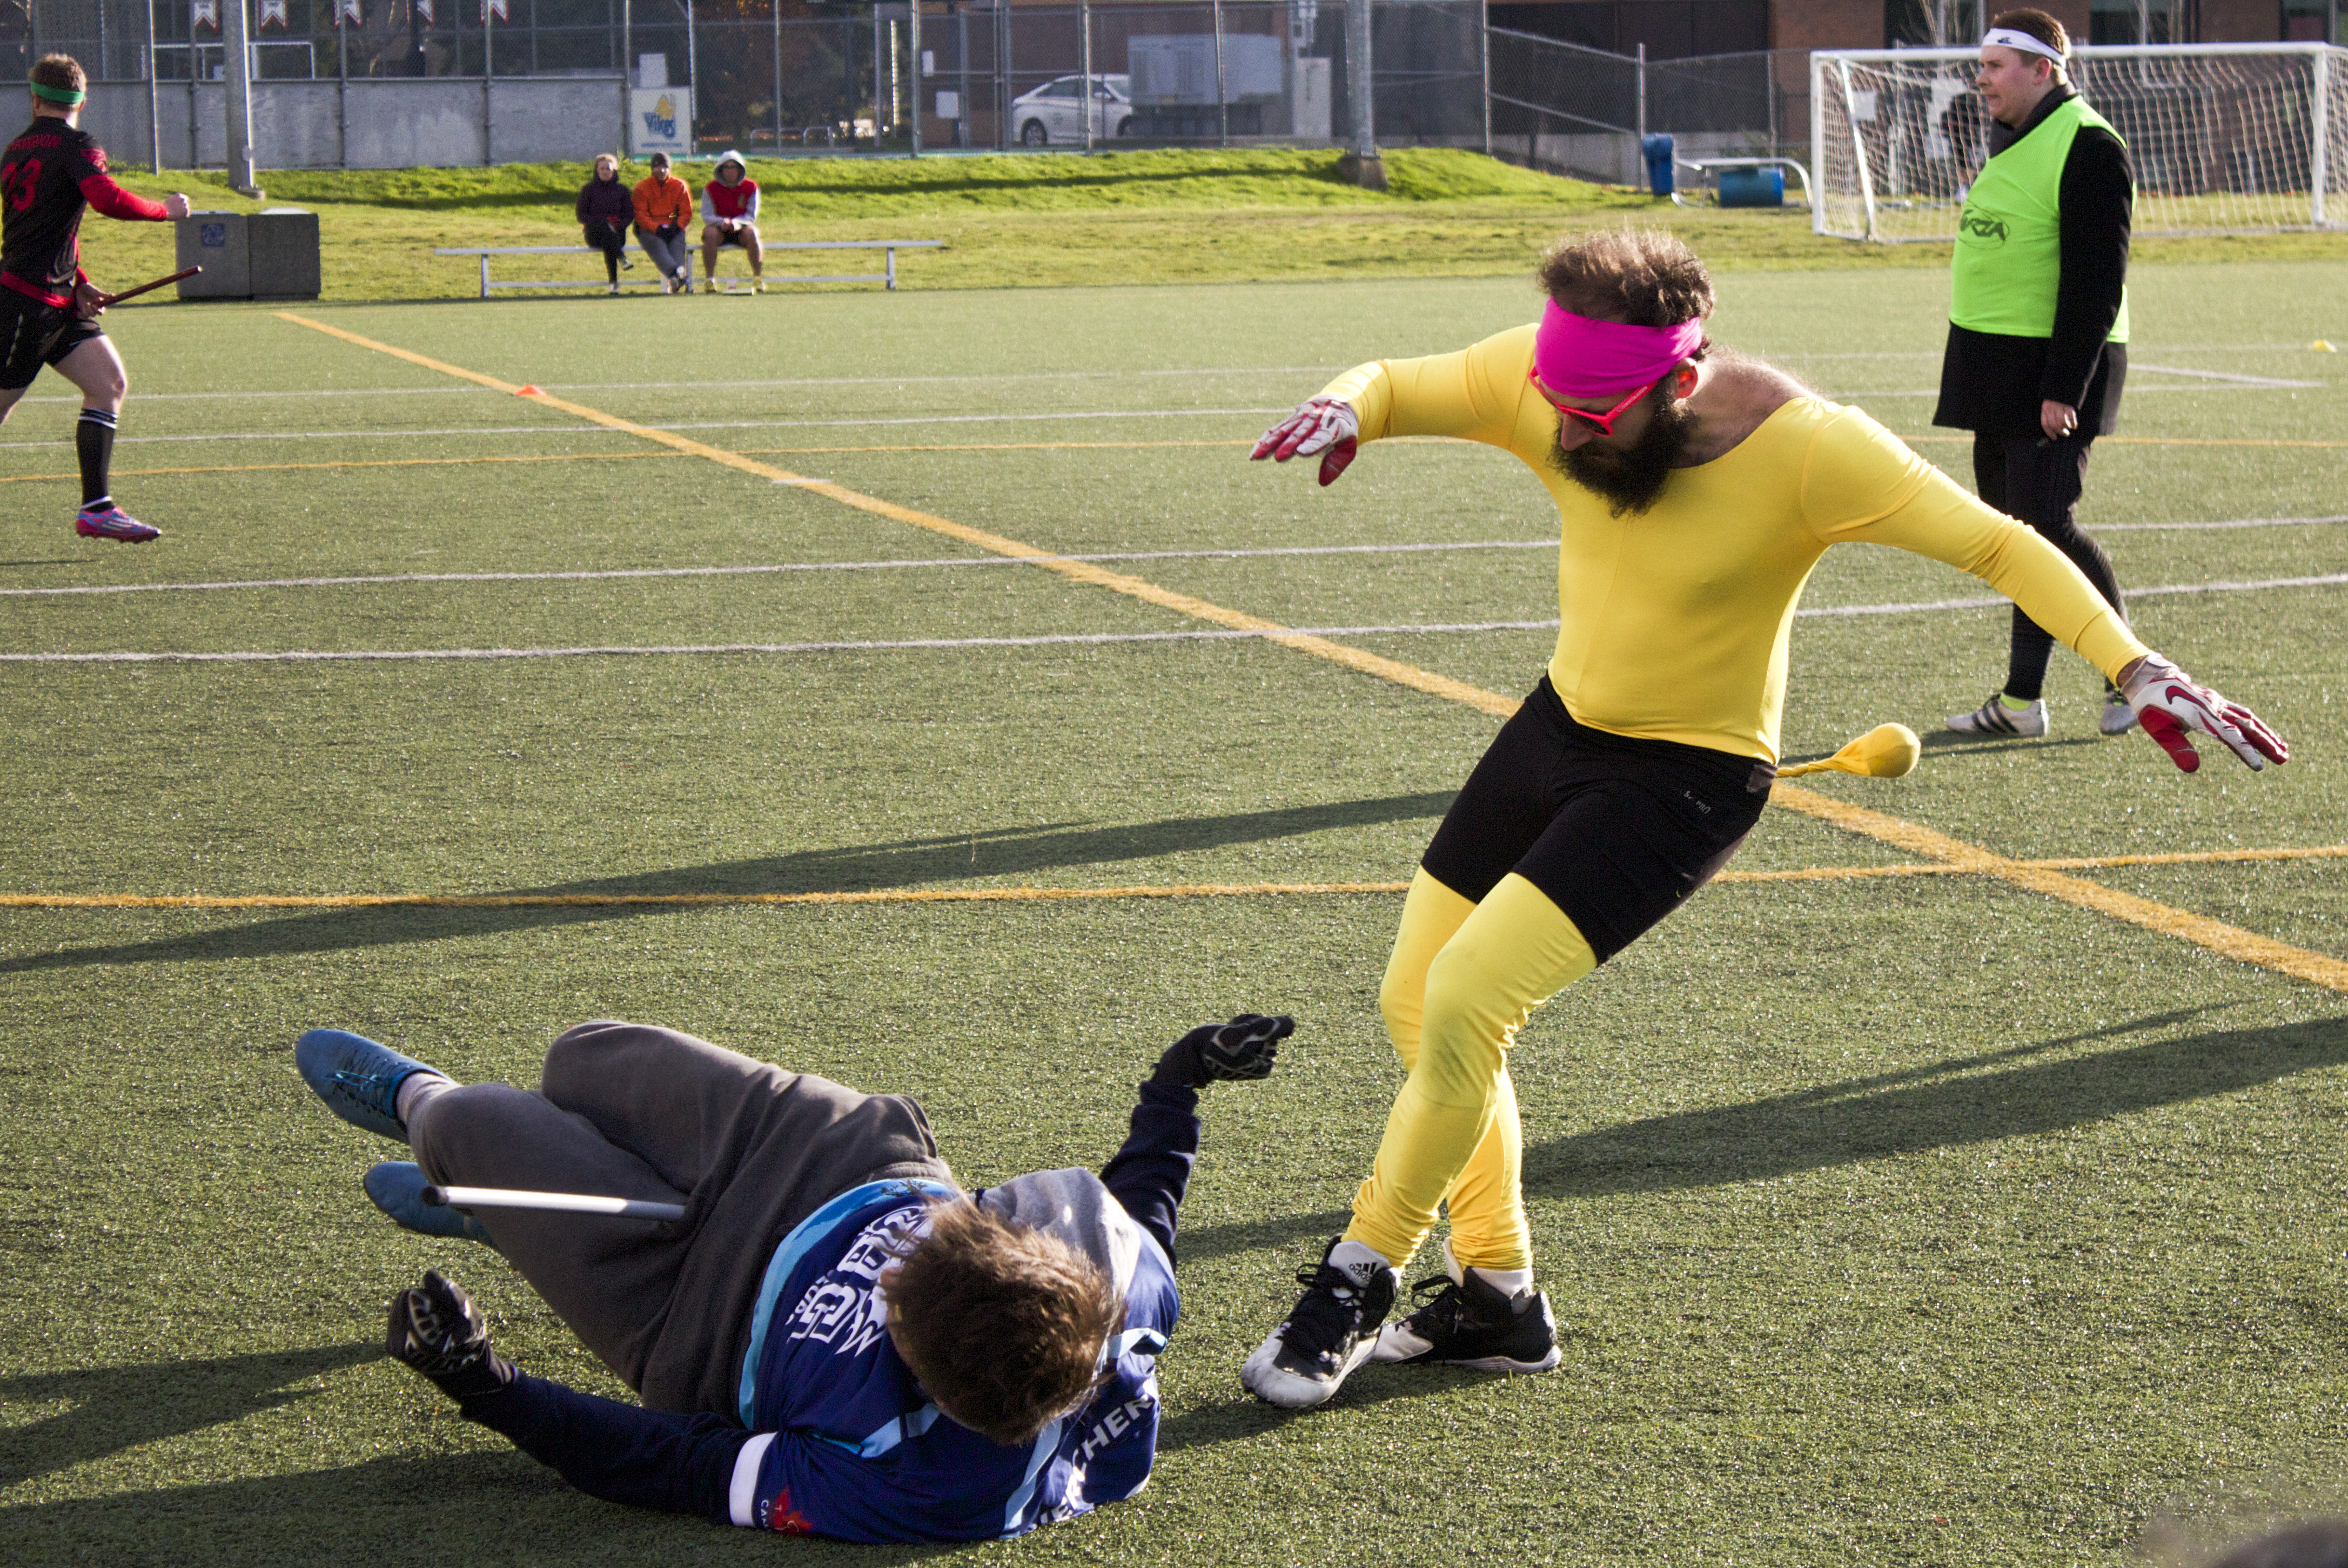 The 'snitch' tackles a UBC player in the Semi-Final match. Photo by Devon Bidal, Senior Staff Writer.